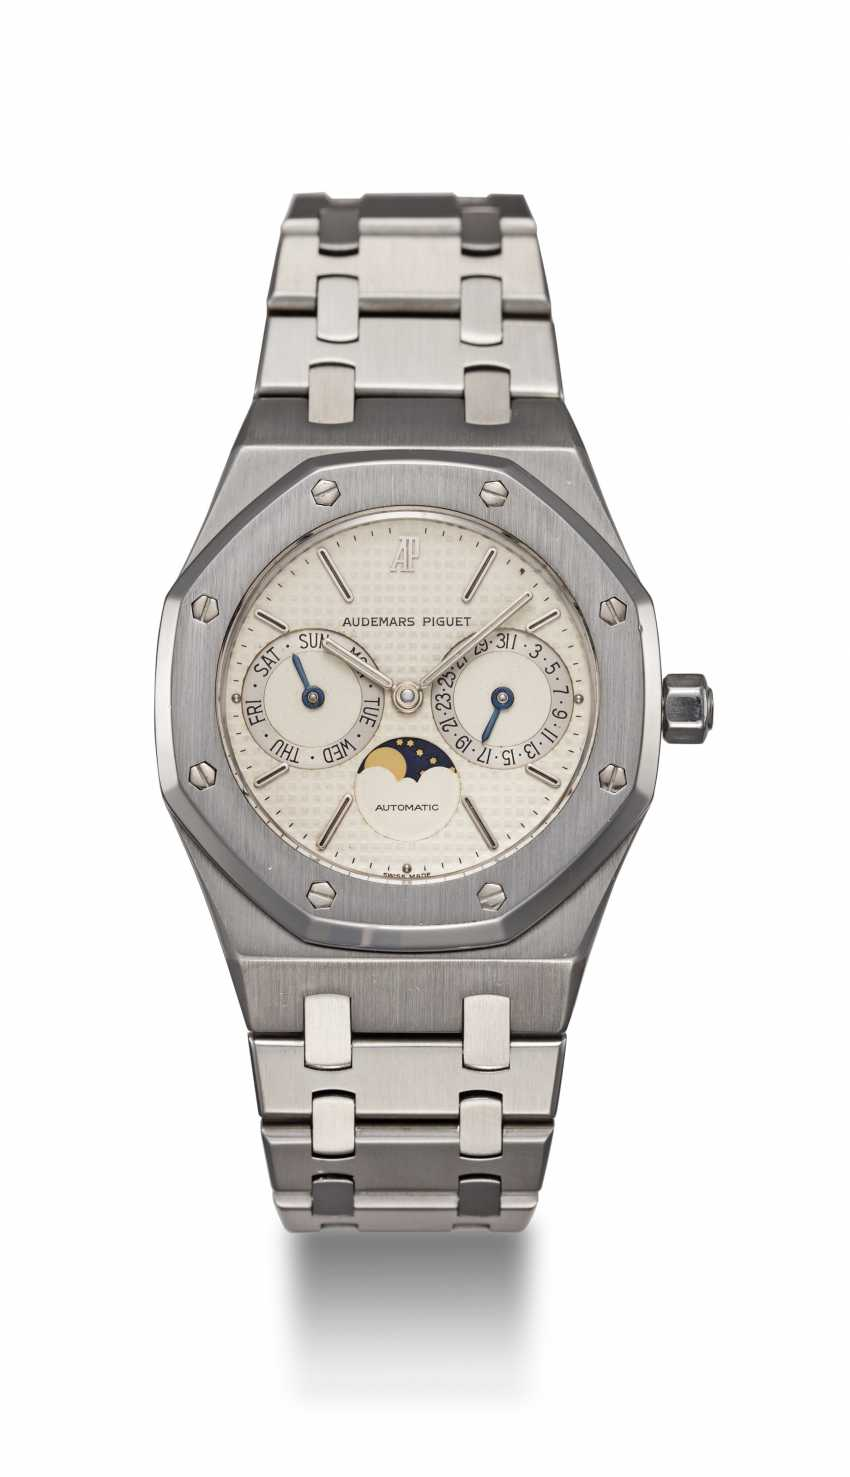 AUDEMARS PIGUET, A STAINLESS STEEL ROYAL OAK DAY-DATE WITH MOON-PHASE, REF. 25594ST - photo 3